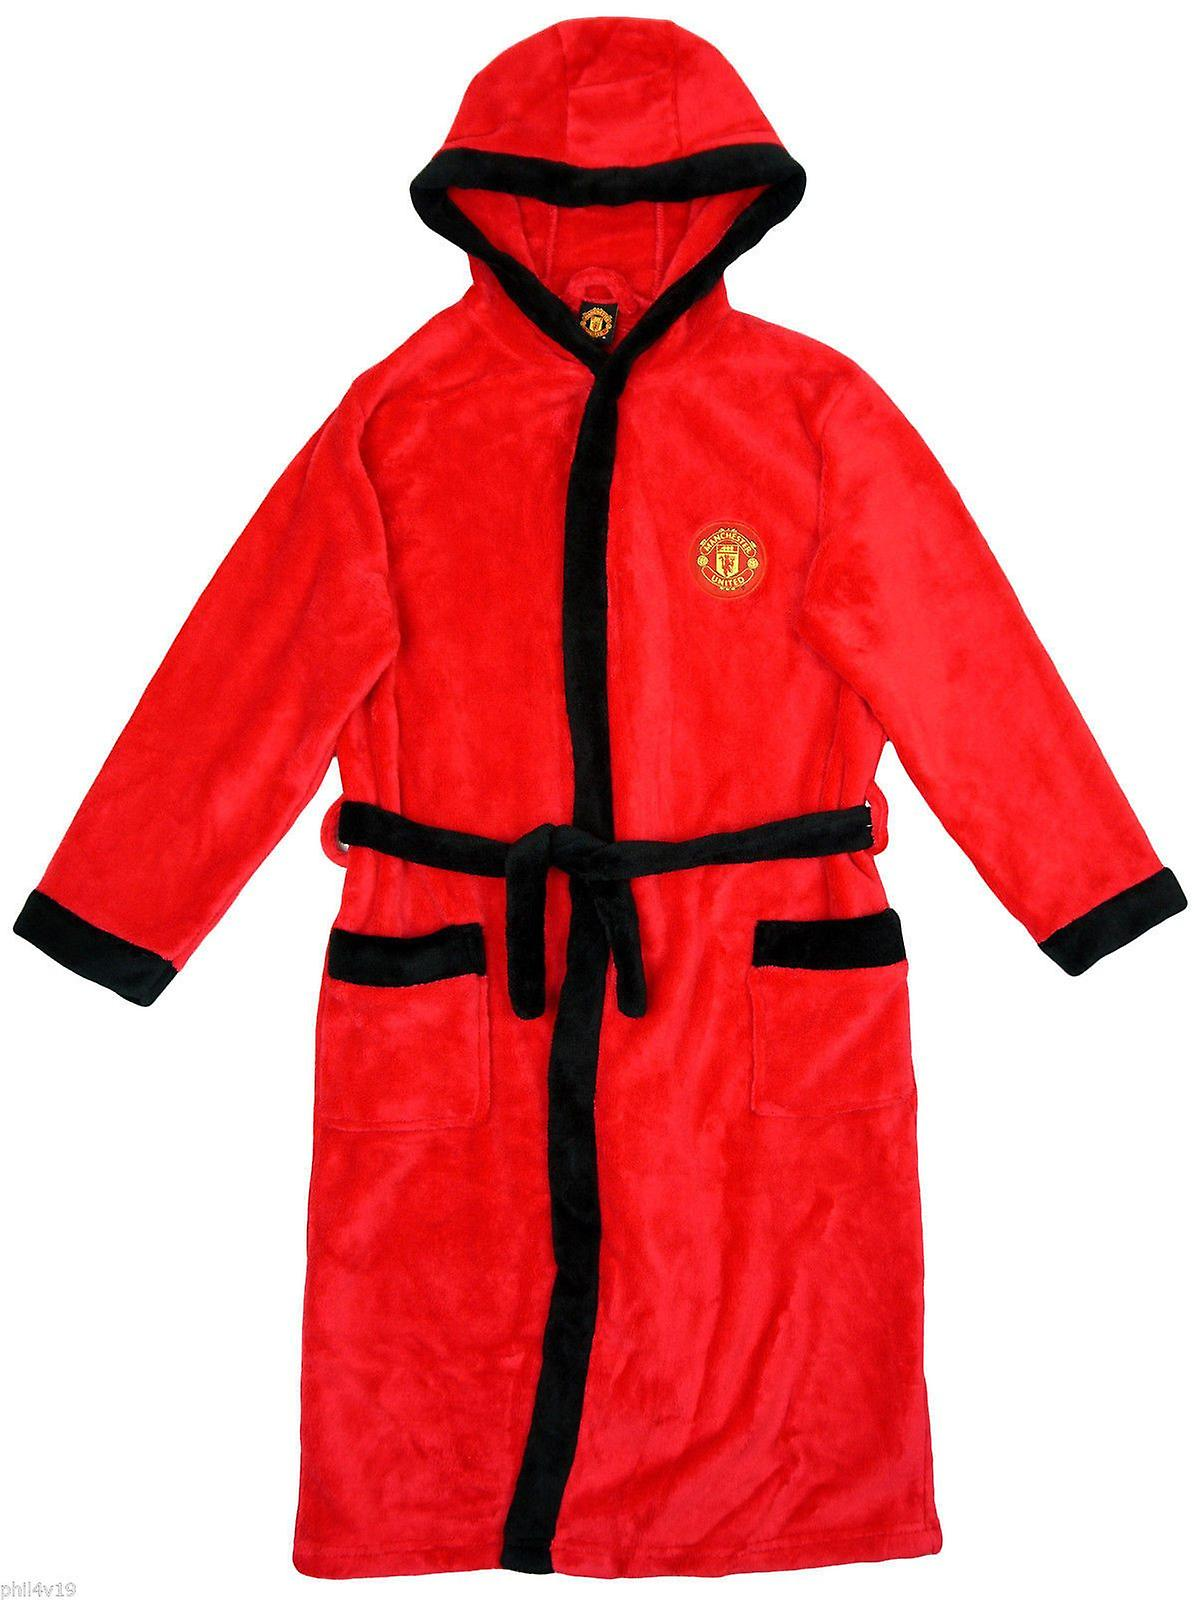 Kids Man United Dressing Gown / Childrens Manchester United robe